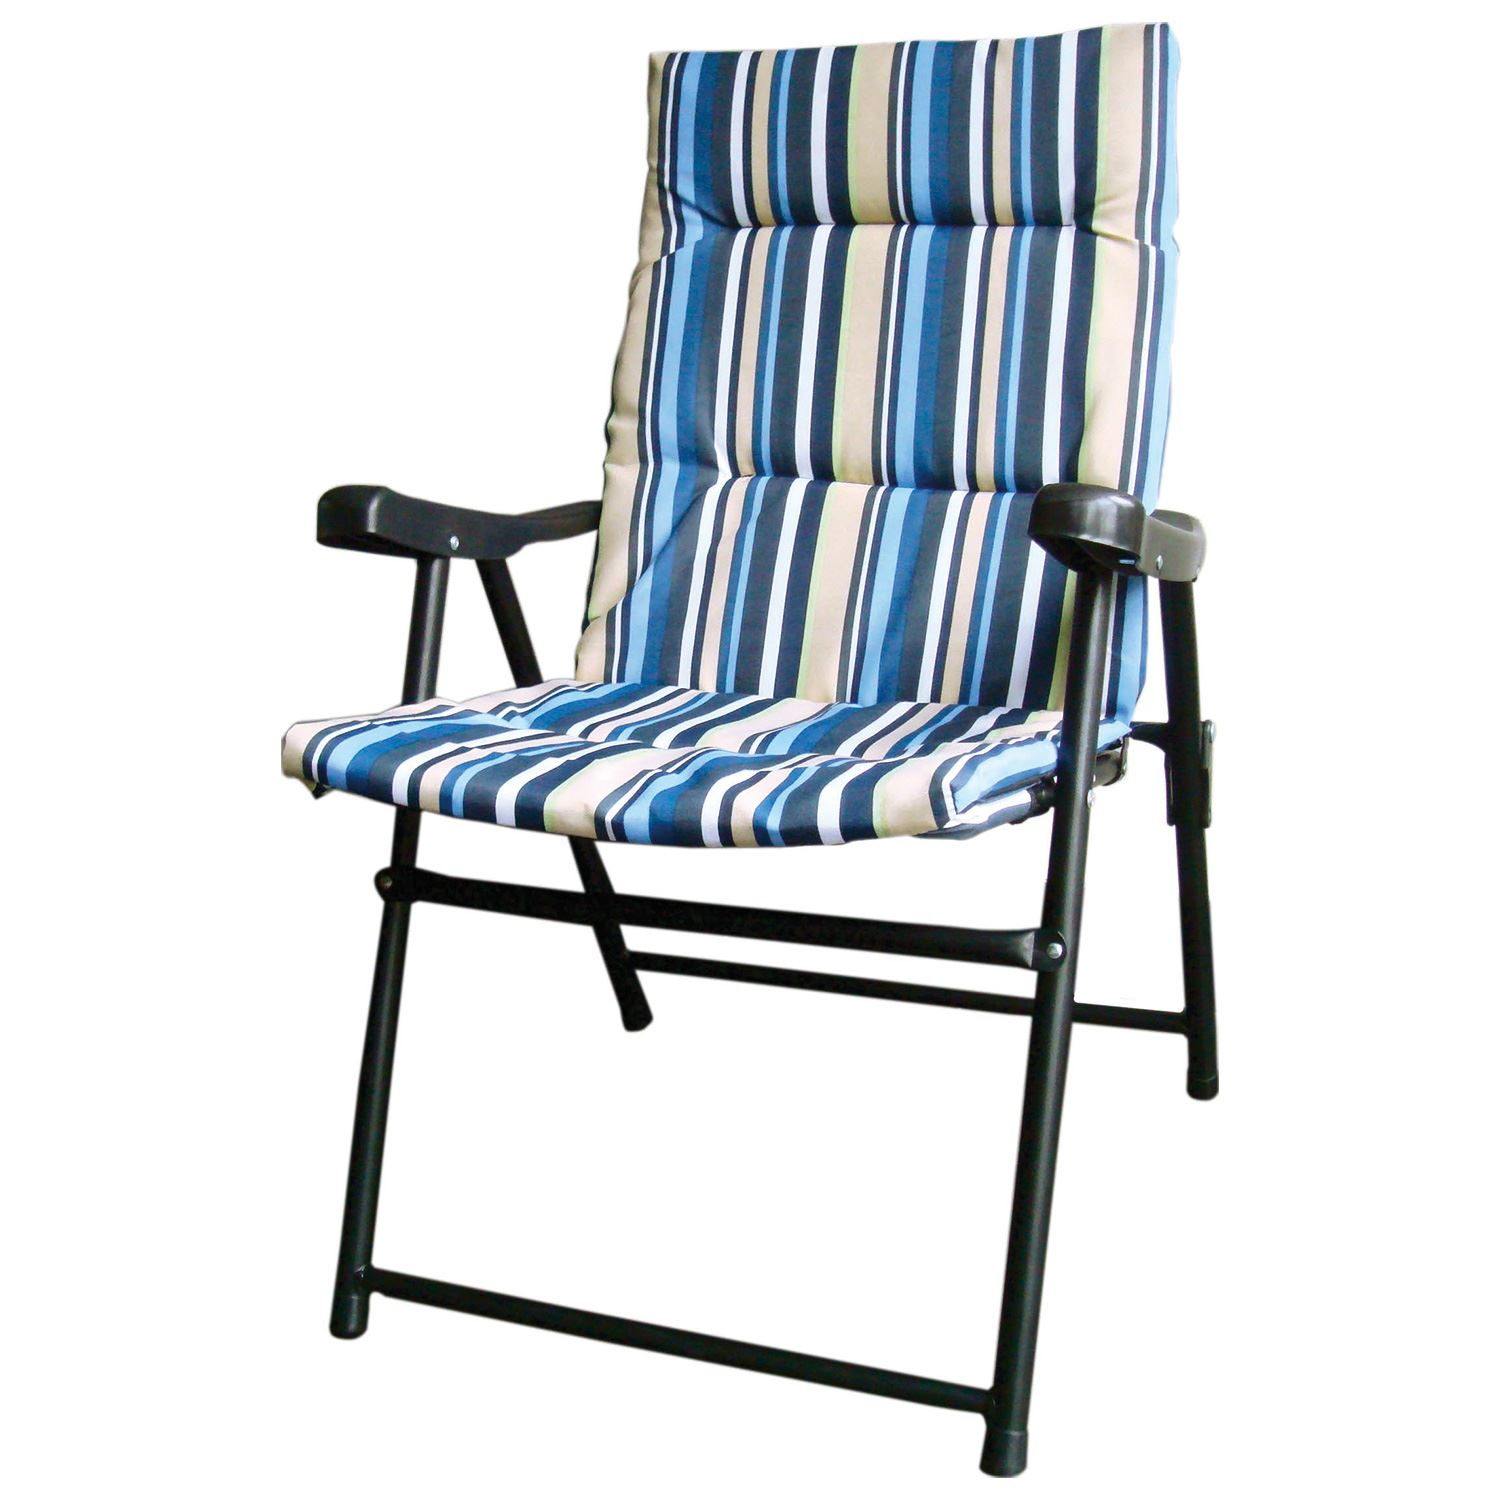 New Padded Folding Outdoor Garden Camping Picnic Chair